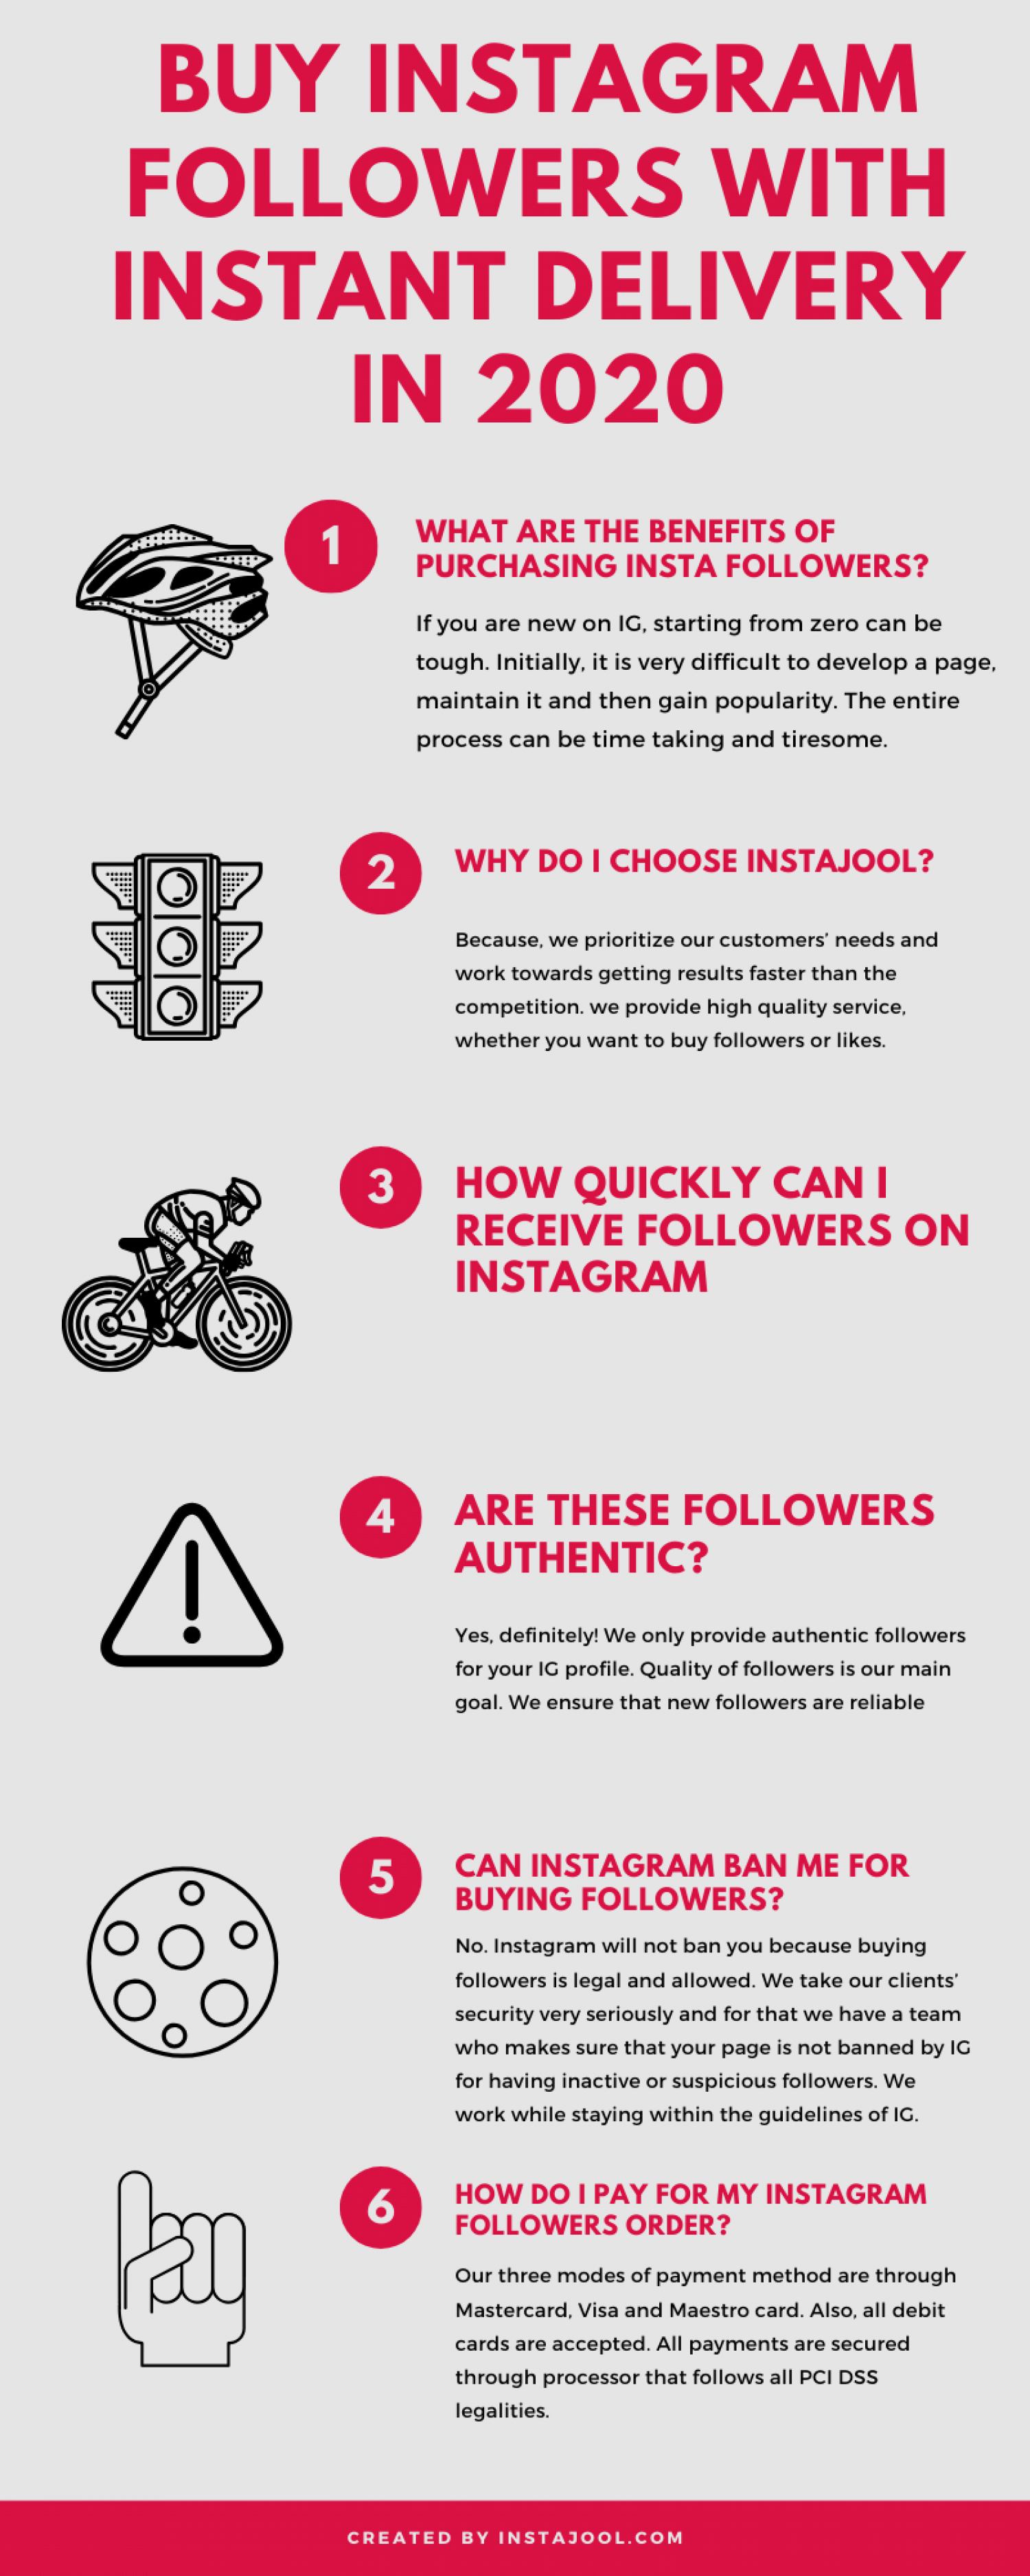 Buy Instagram Followers with Instant Delivery in 2020 Infographic by Instajool.com Infographic